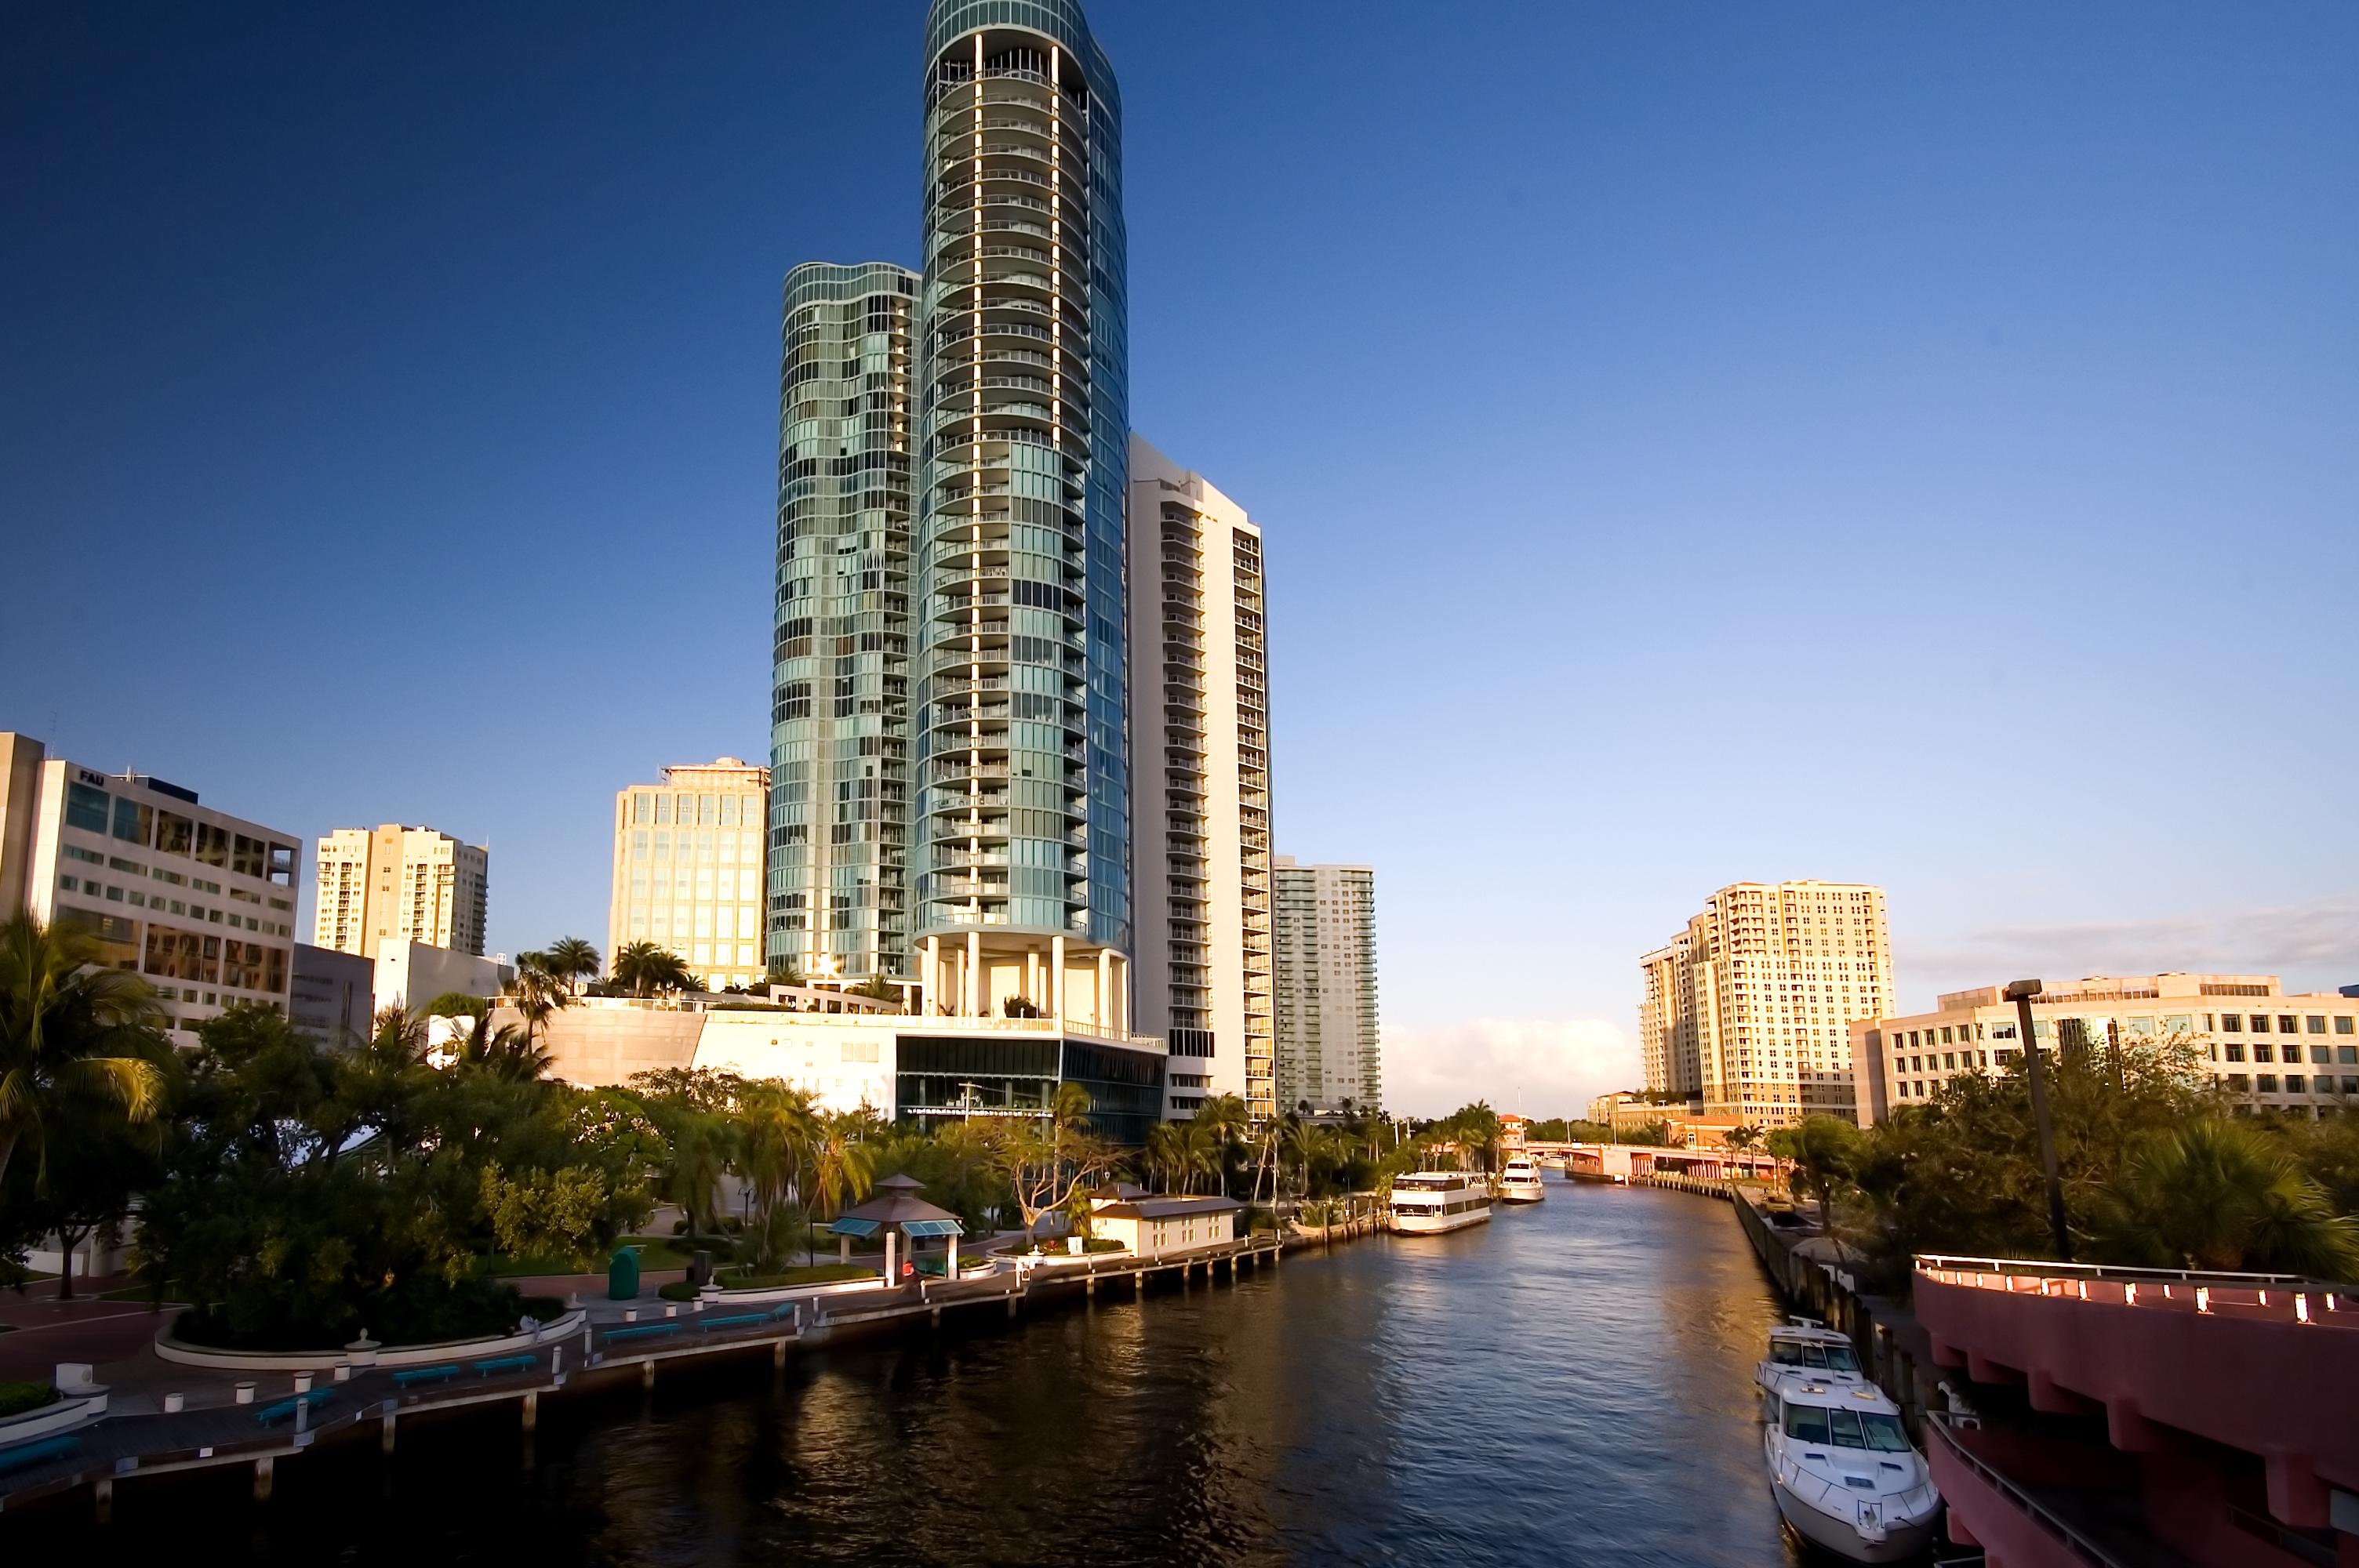 Downtown Fort Lauderdale awaits in 3.2 miles.